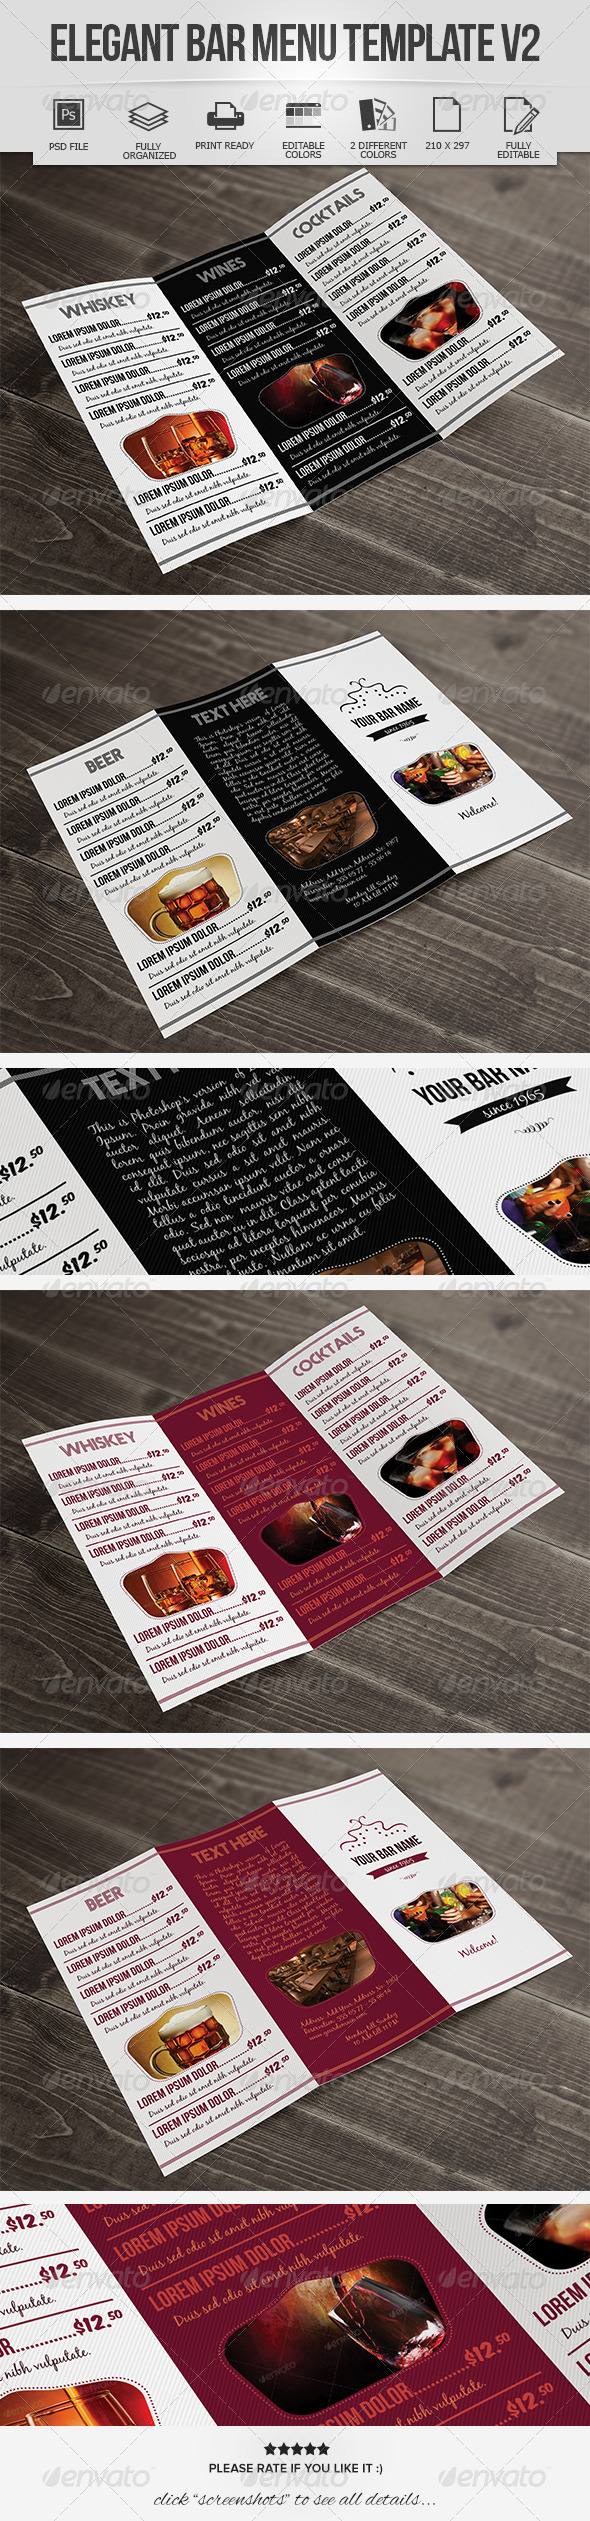 Elegant Bar Menu Design V2 - Food Menus Print Templates